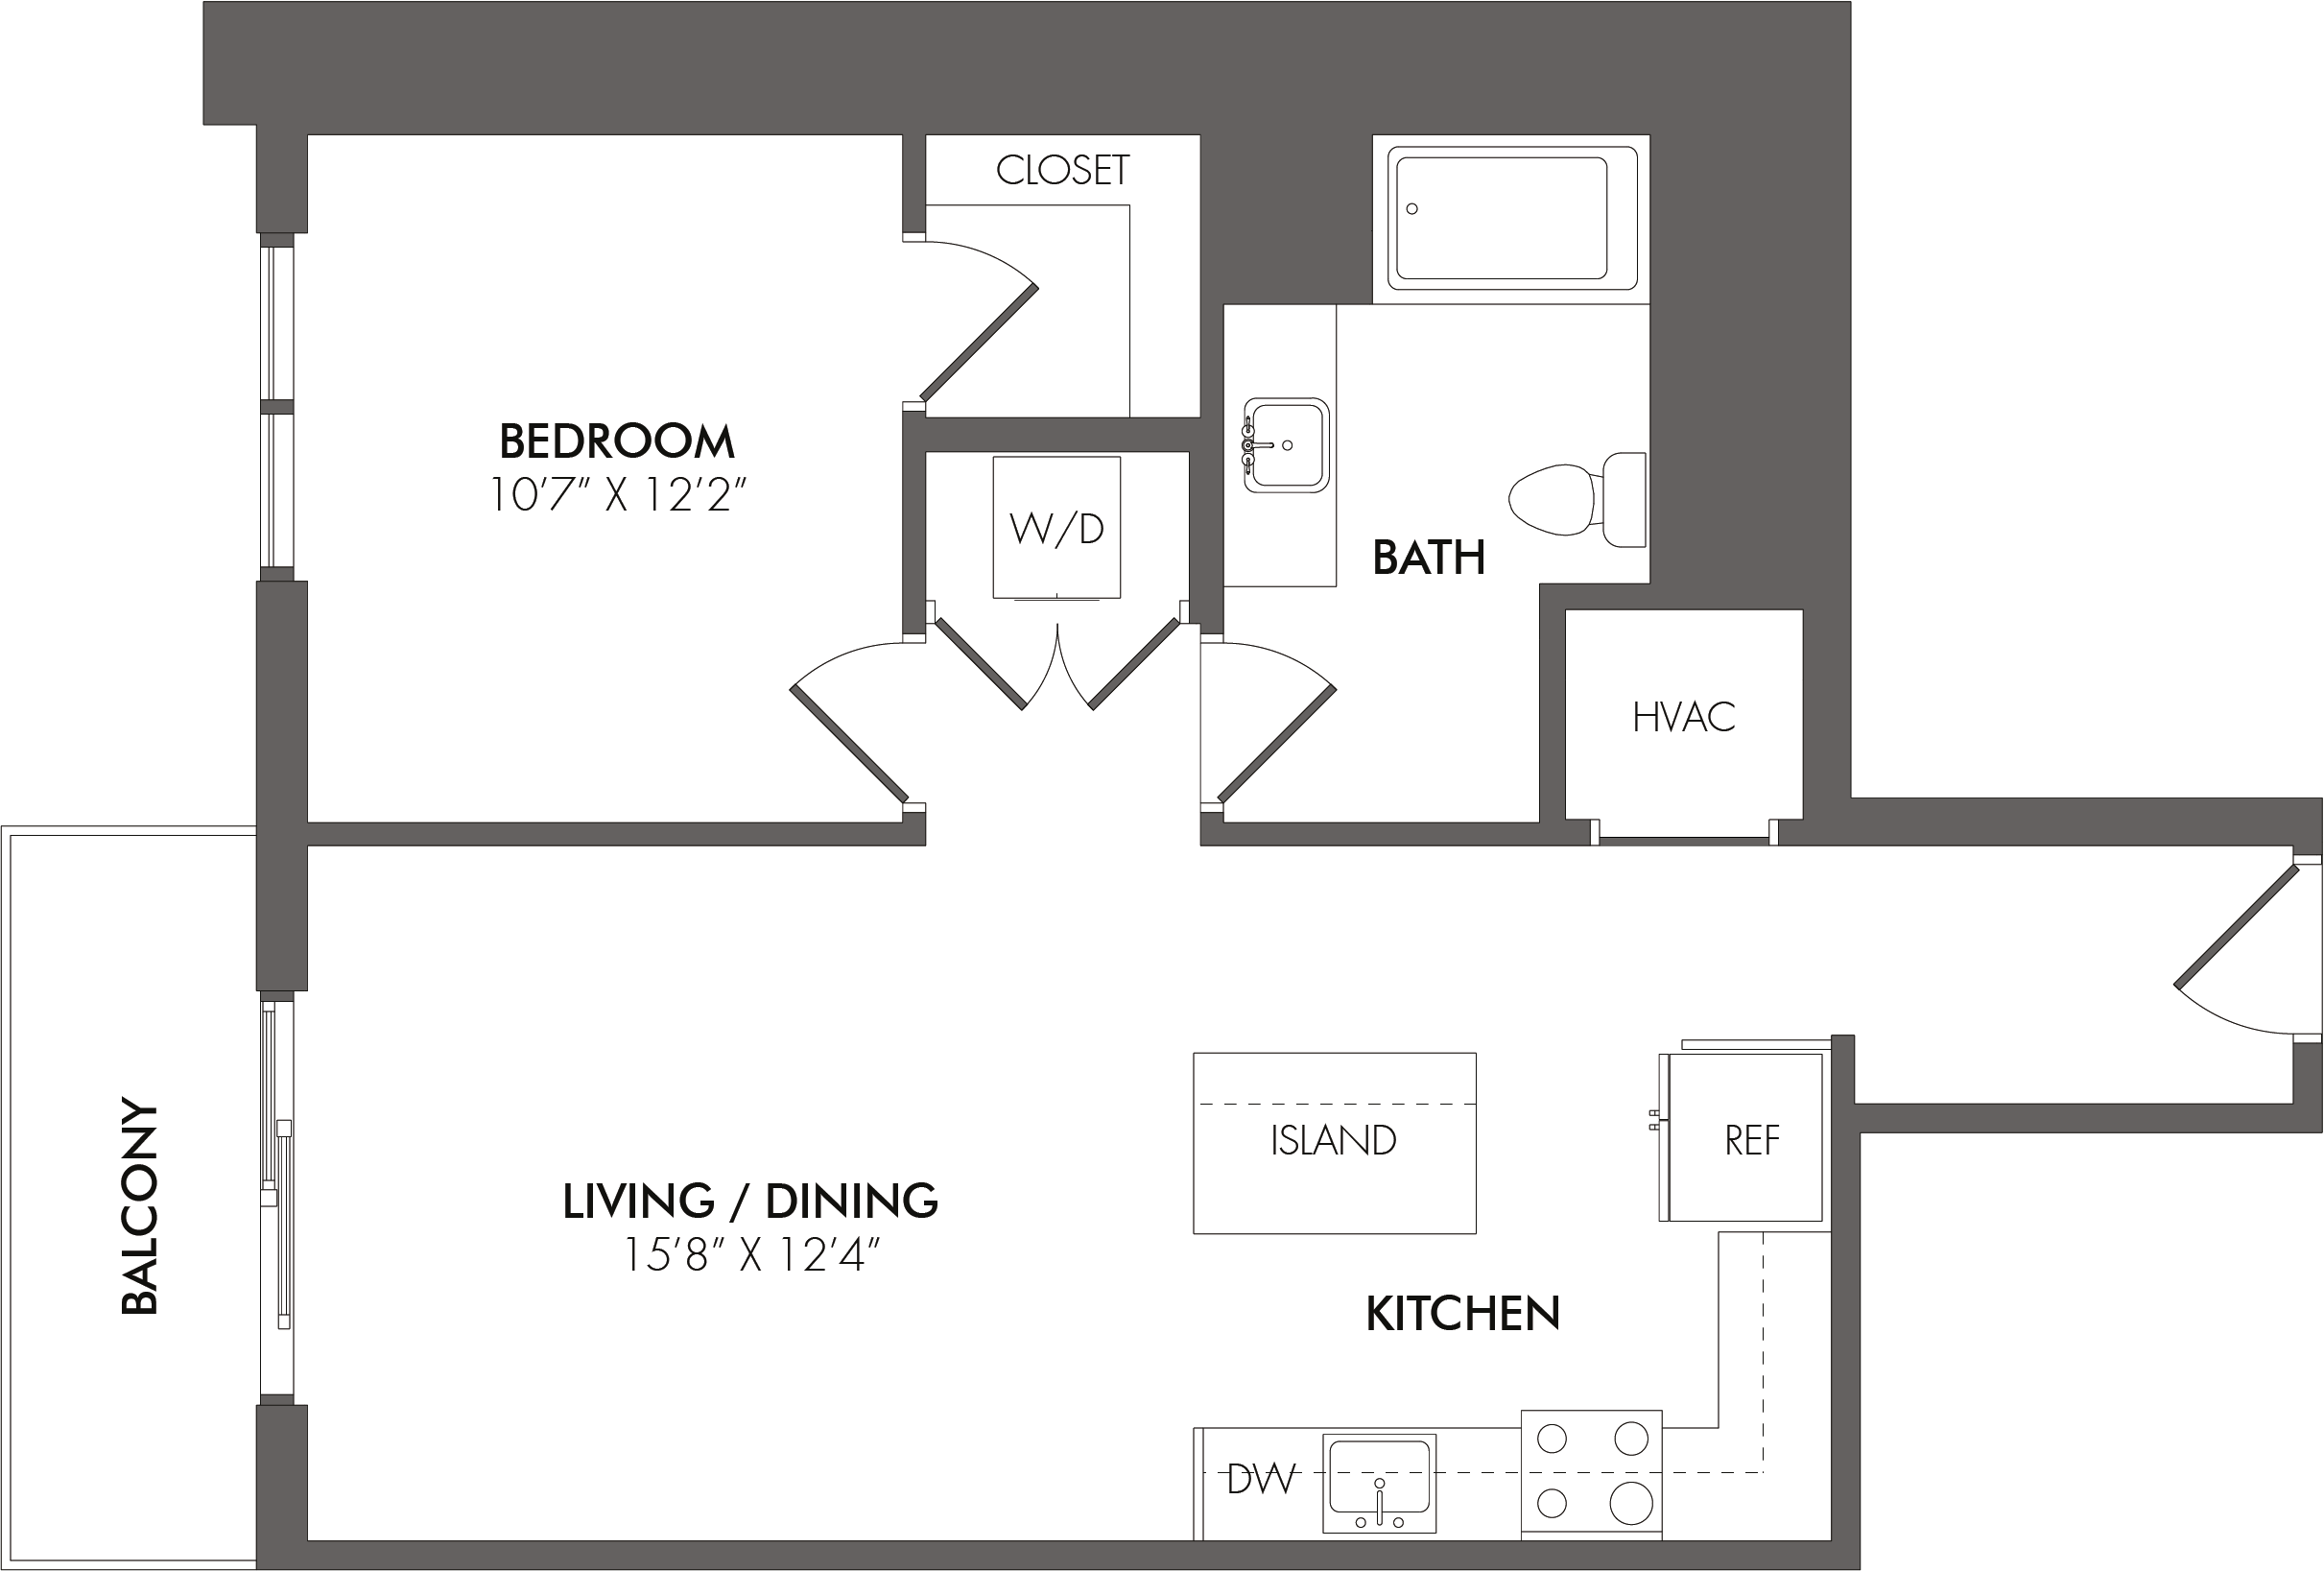 Apartment 2610 floorplan